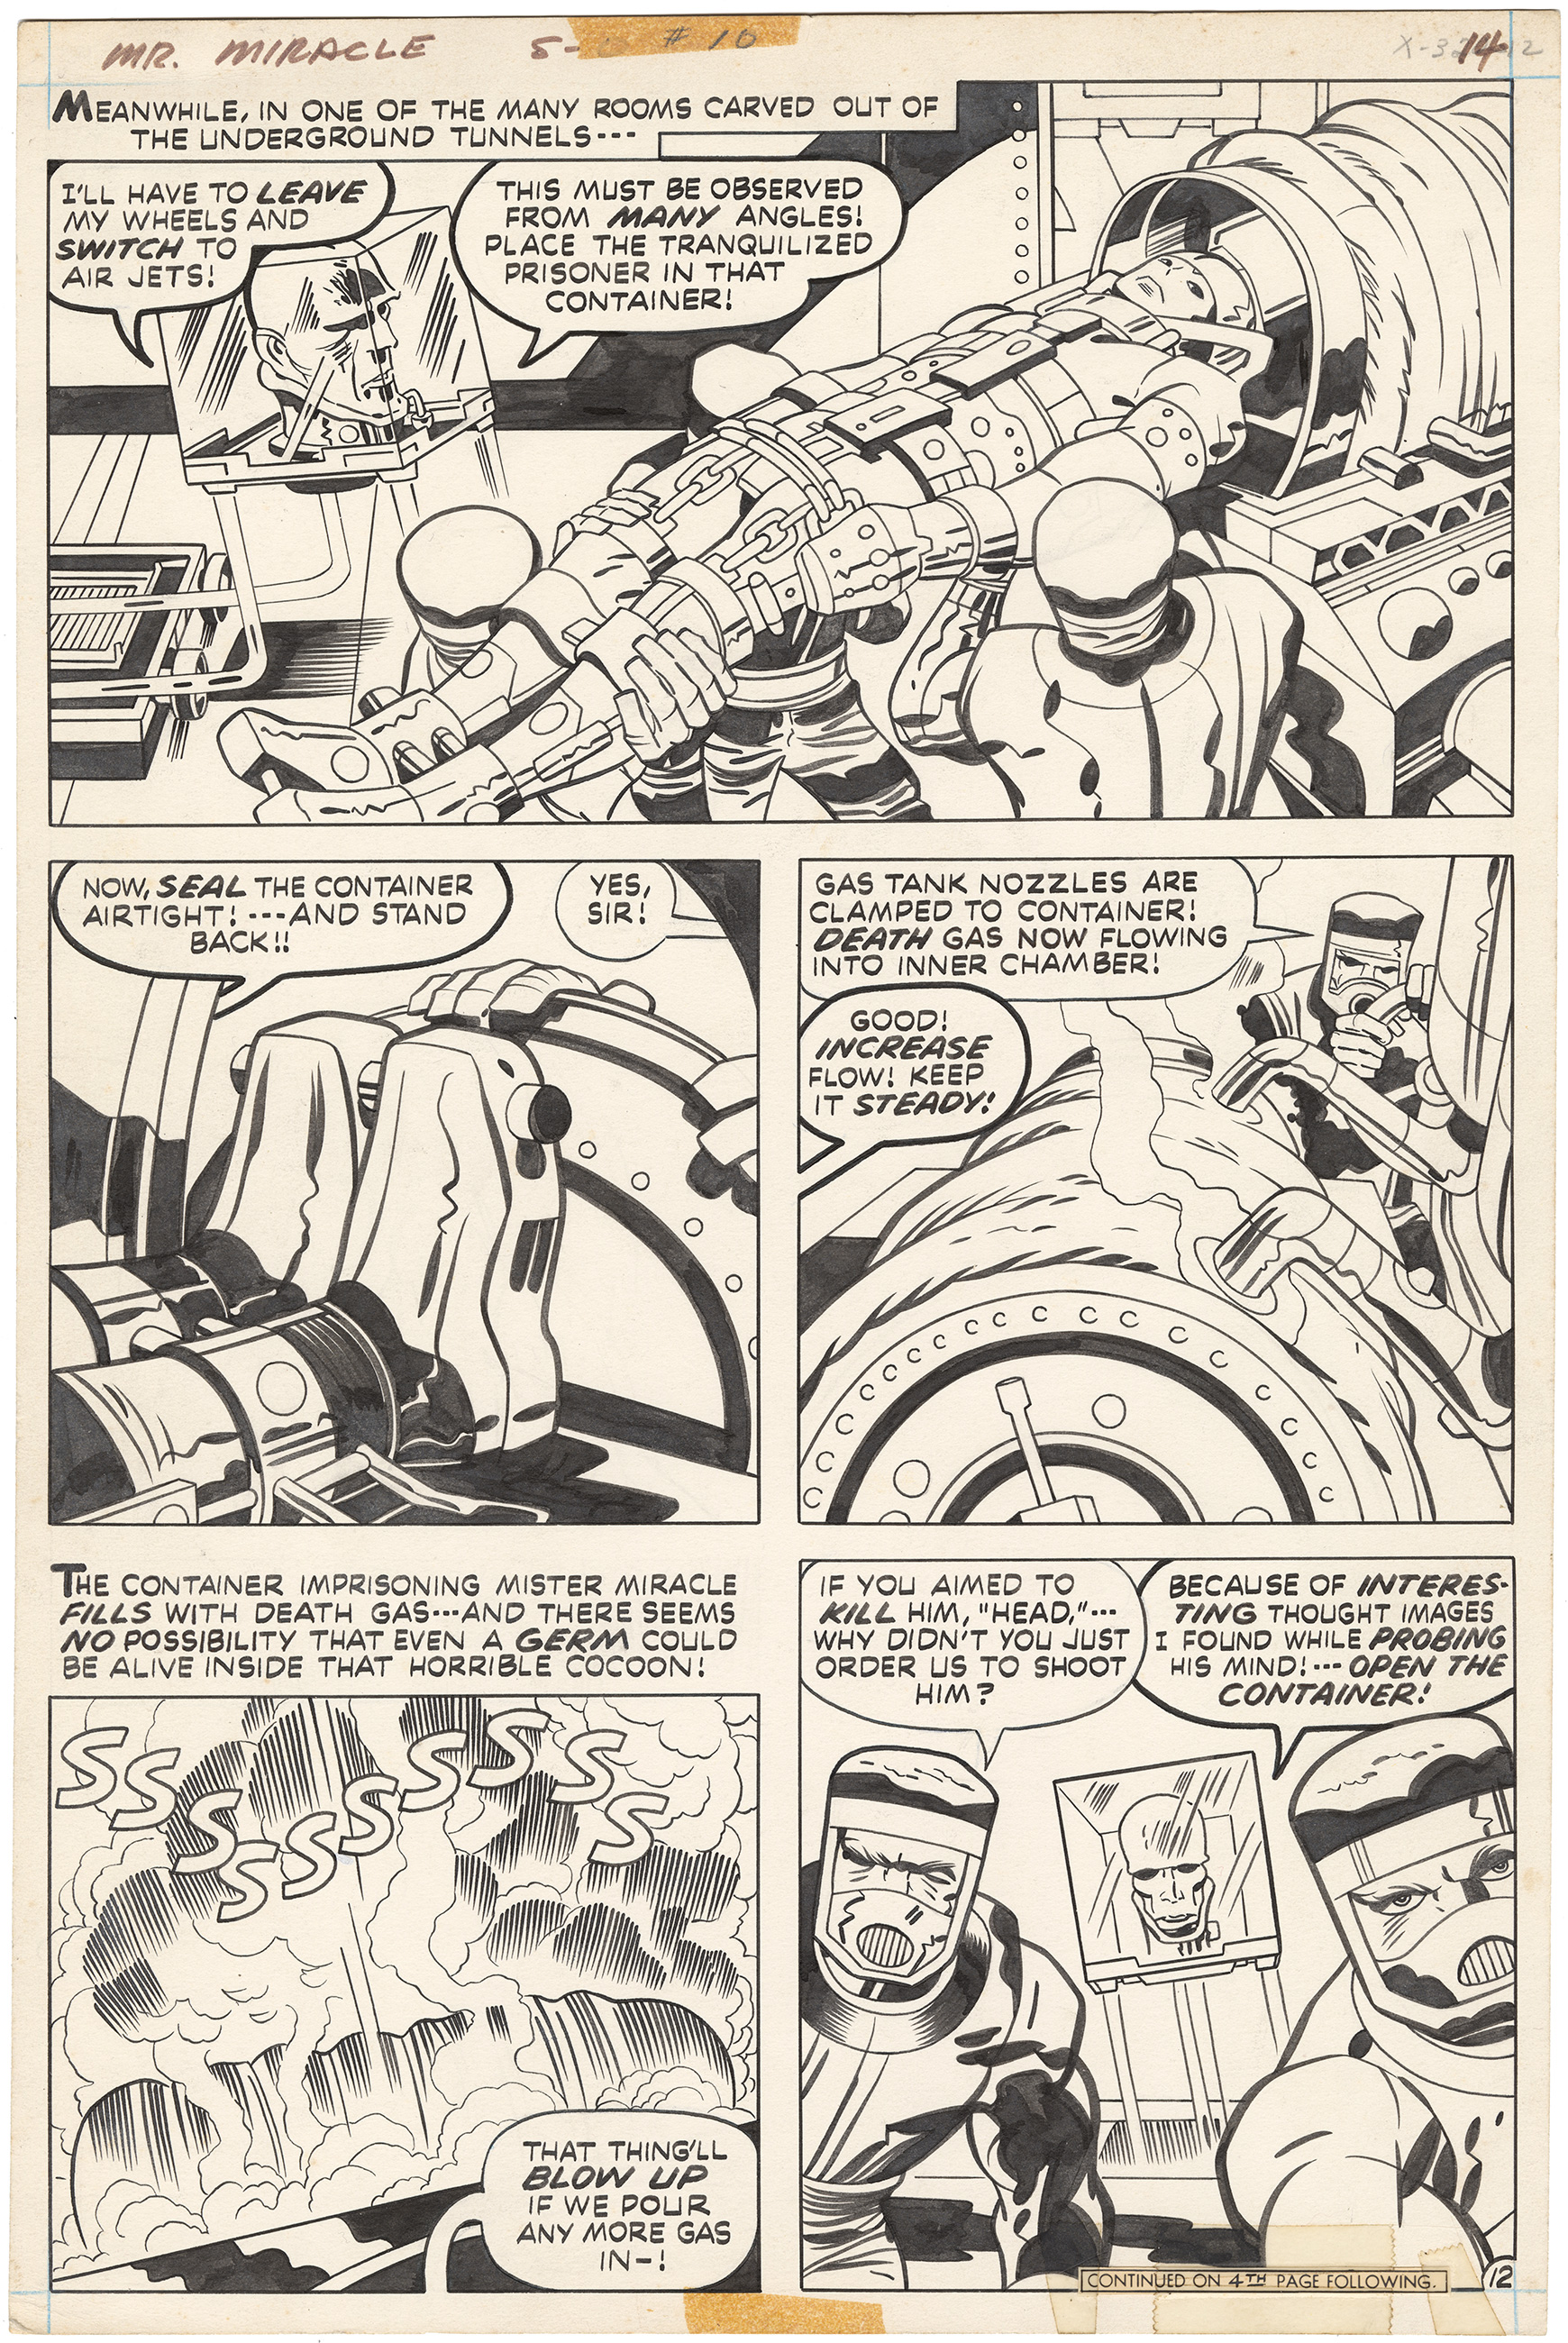 Mister Miracle #10 p12